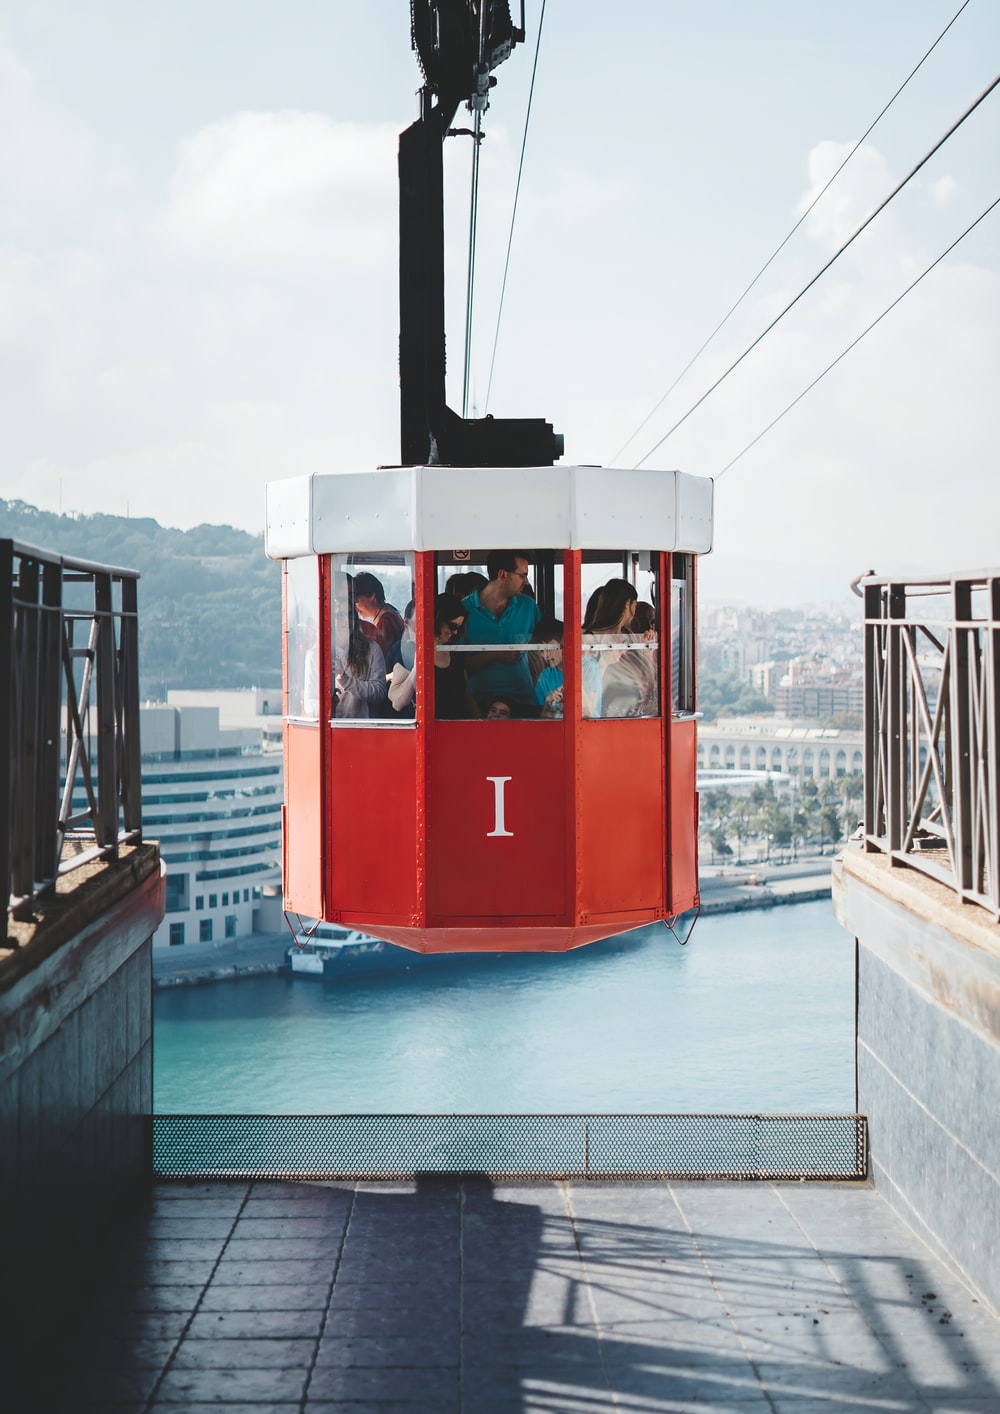 people riding on cable cart